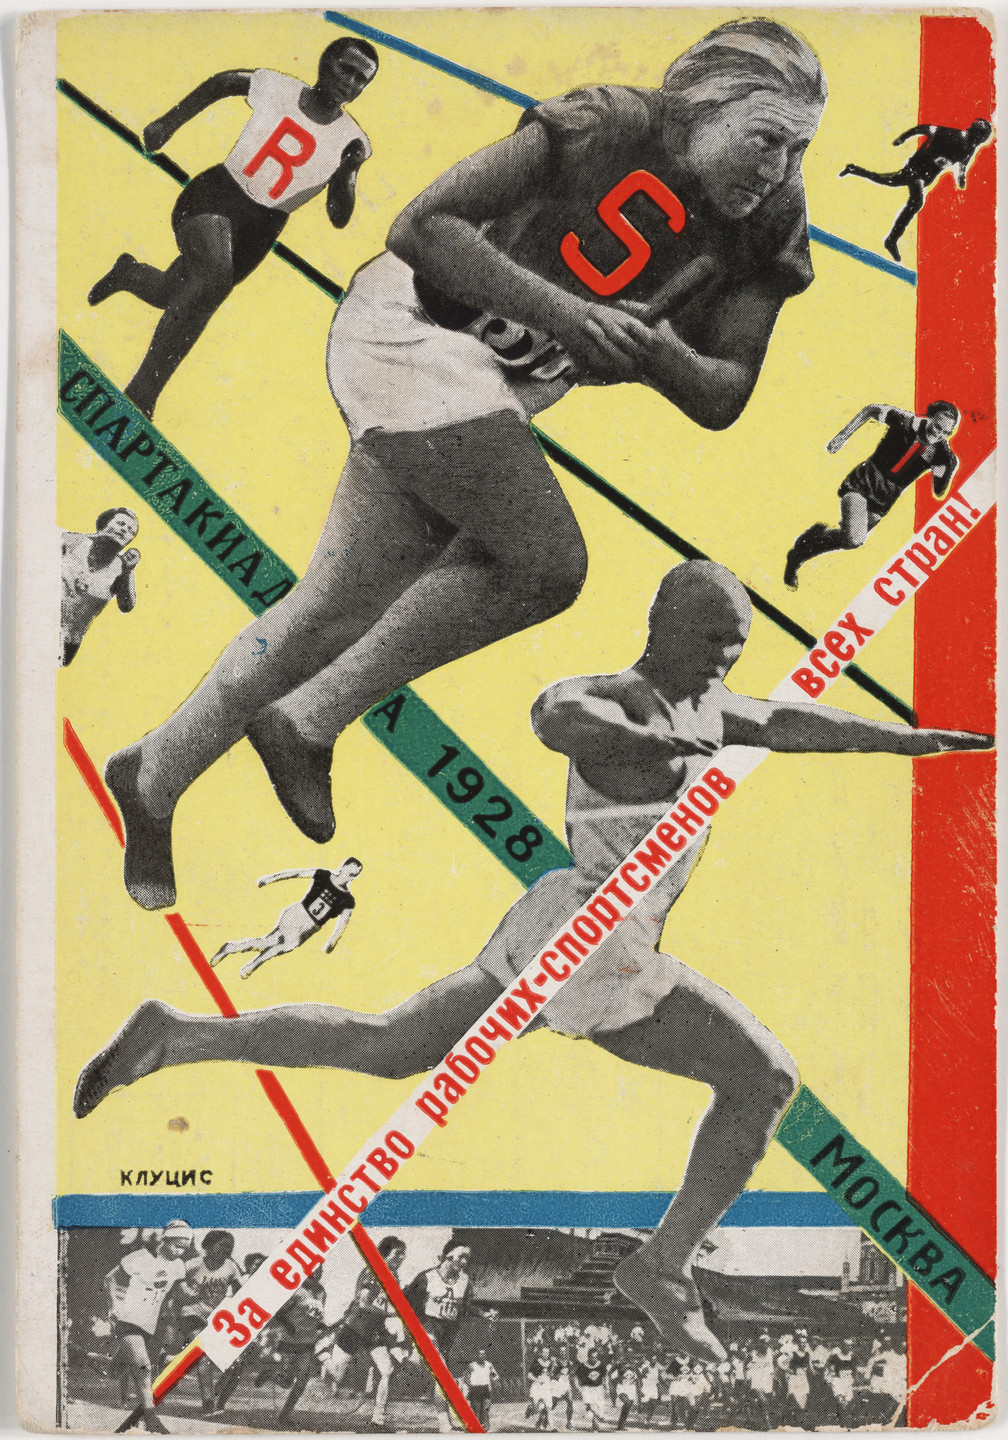 Gustav Klutsis. Postcard for the All Union Spartakiada Sporting Event. 1928